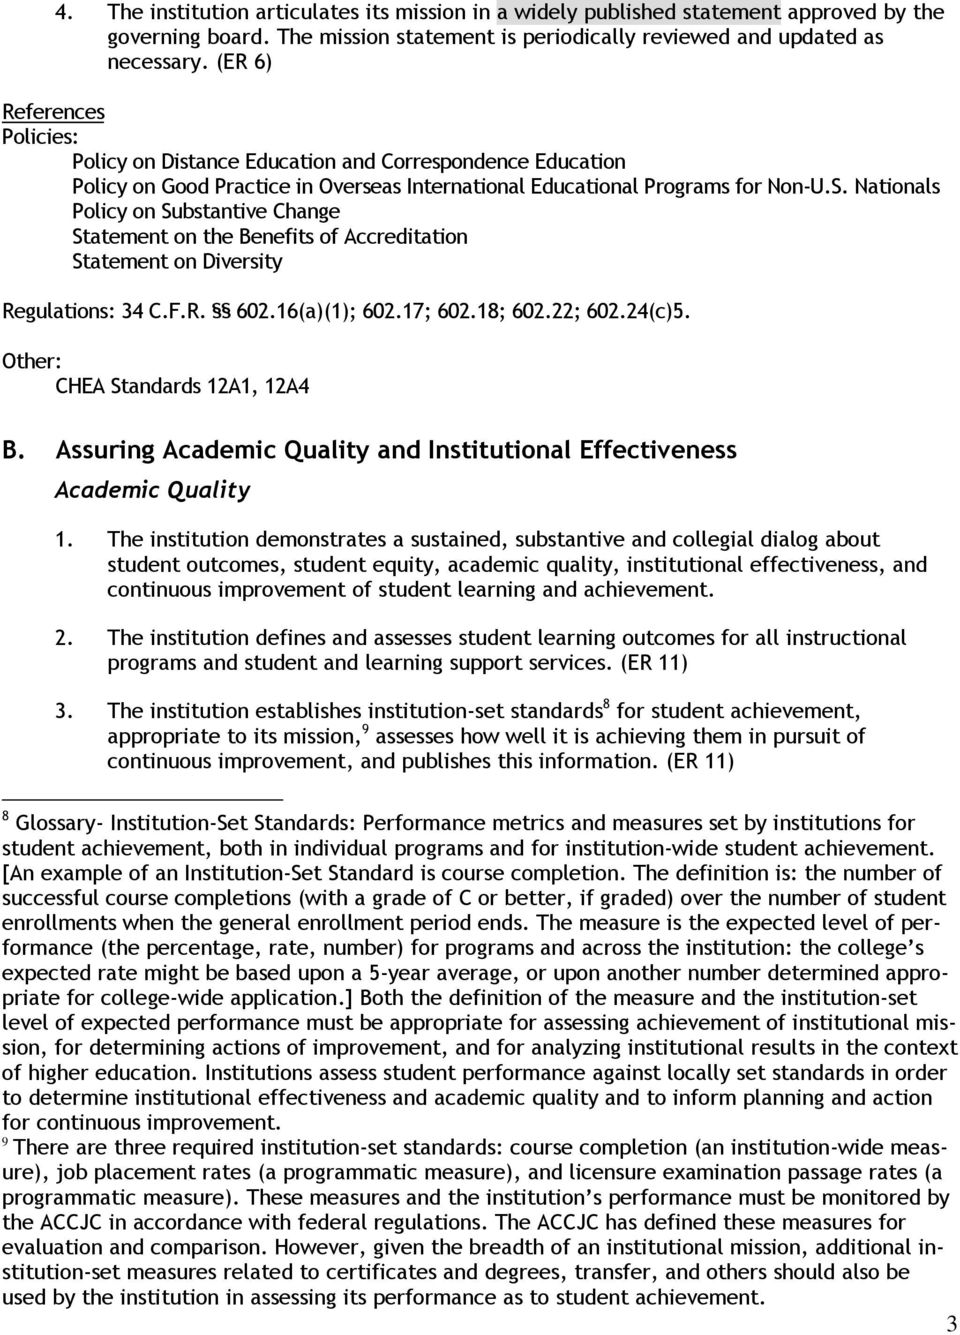 Nationals Policy on Substantive Change Statement on the Benefits of Accreditation Statement on Diversity 34 C.F.R. 602.16(a)(1); 602.17; 602.18; 602.22; 602.24(c)5. CHEA Standards 12A1, 12A4 B.